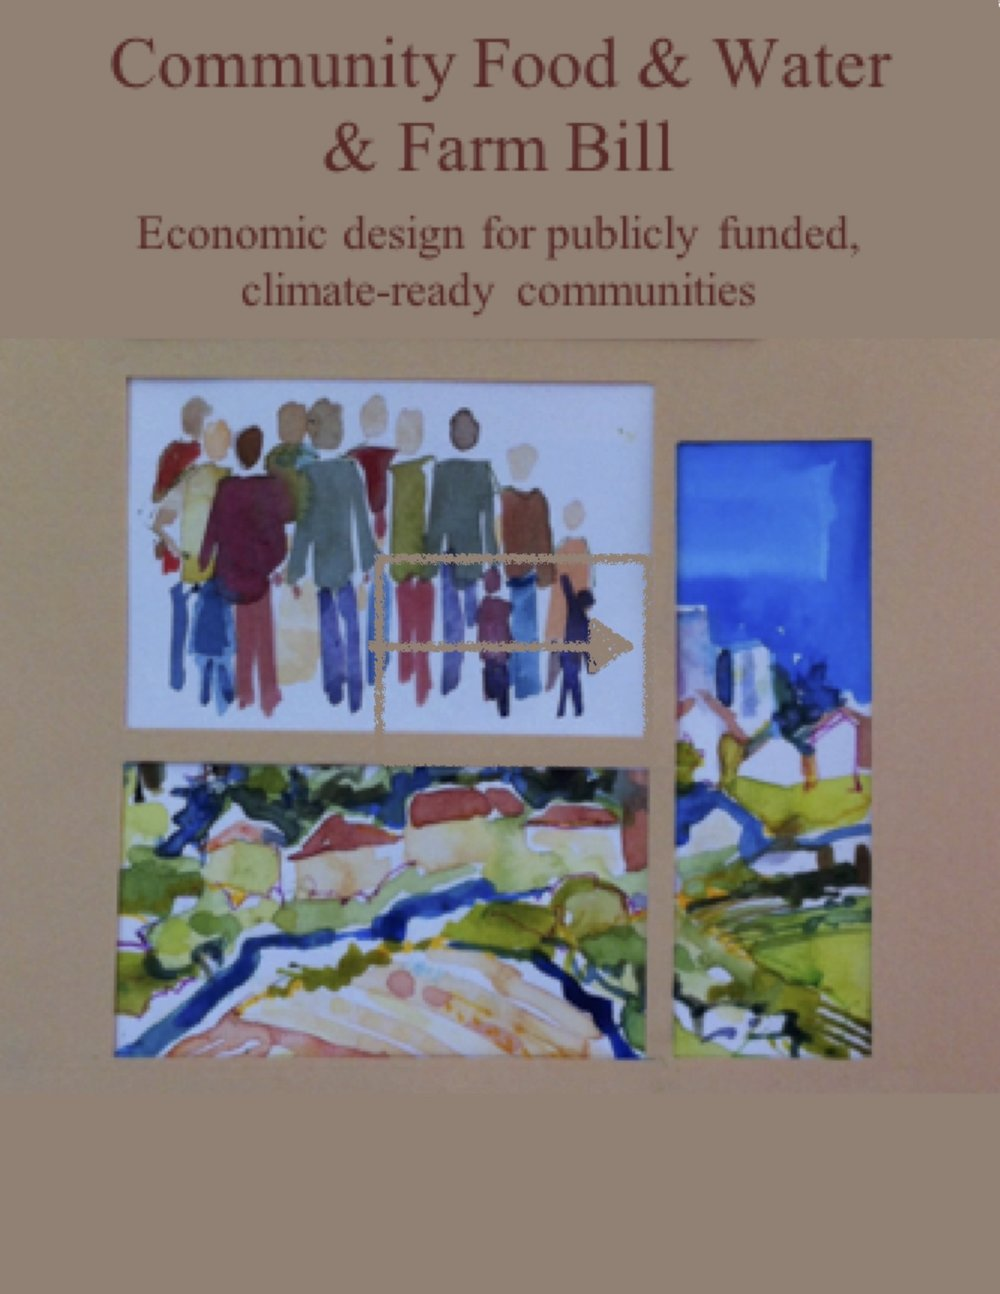 Farm Bill poster plain.jpg